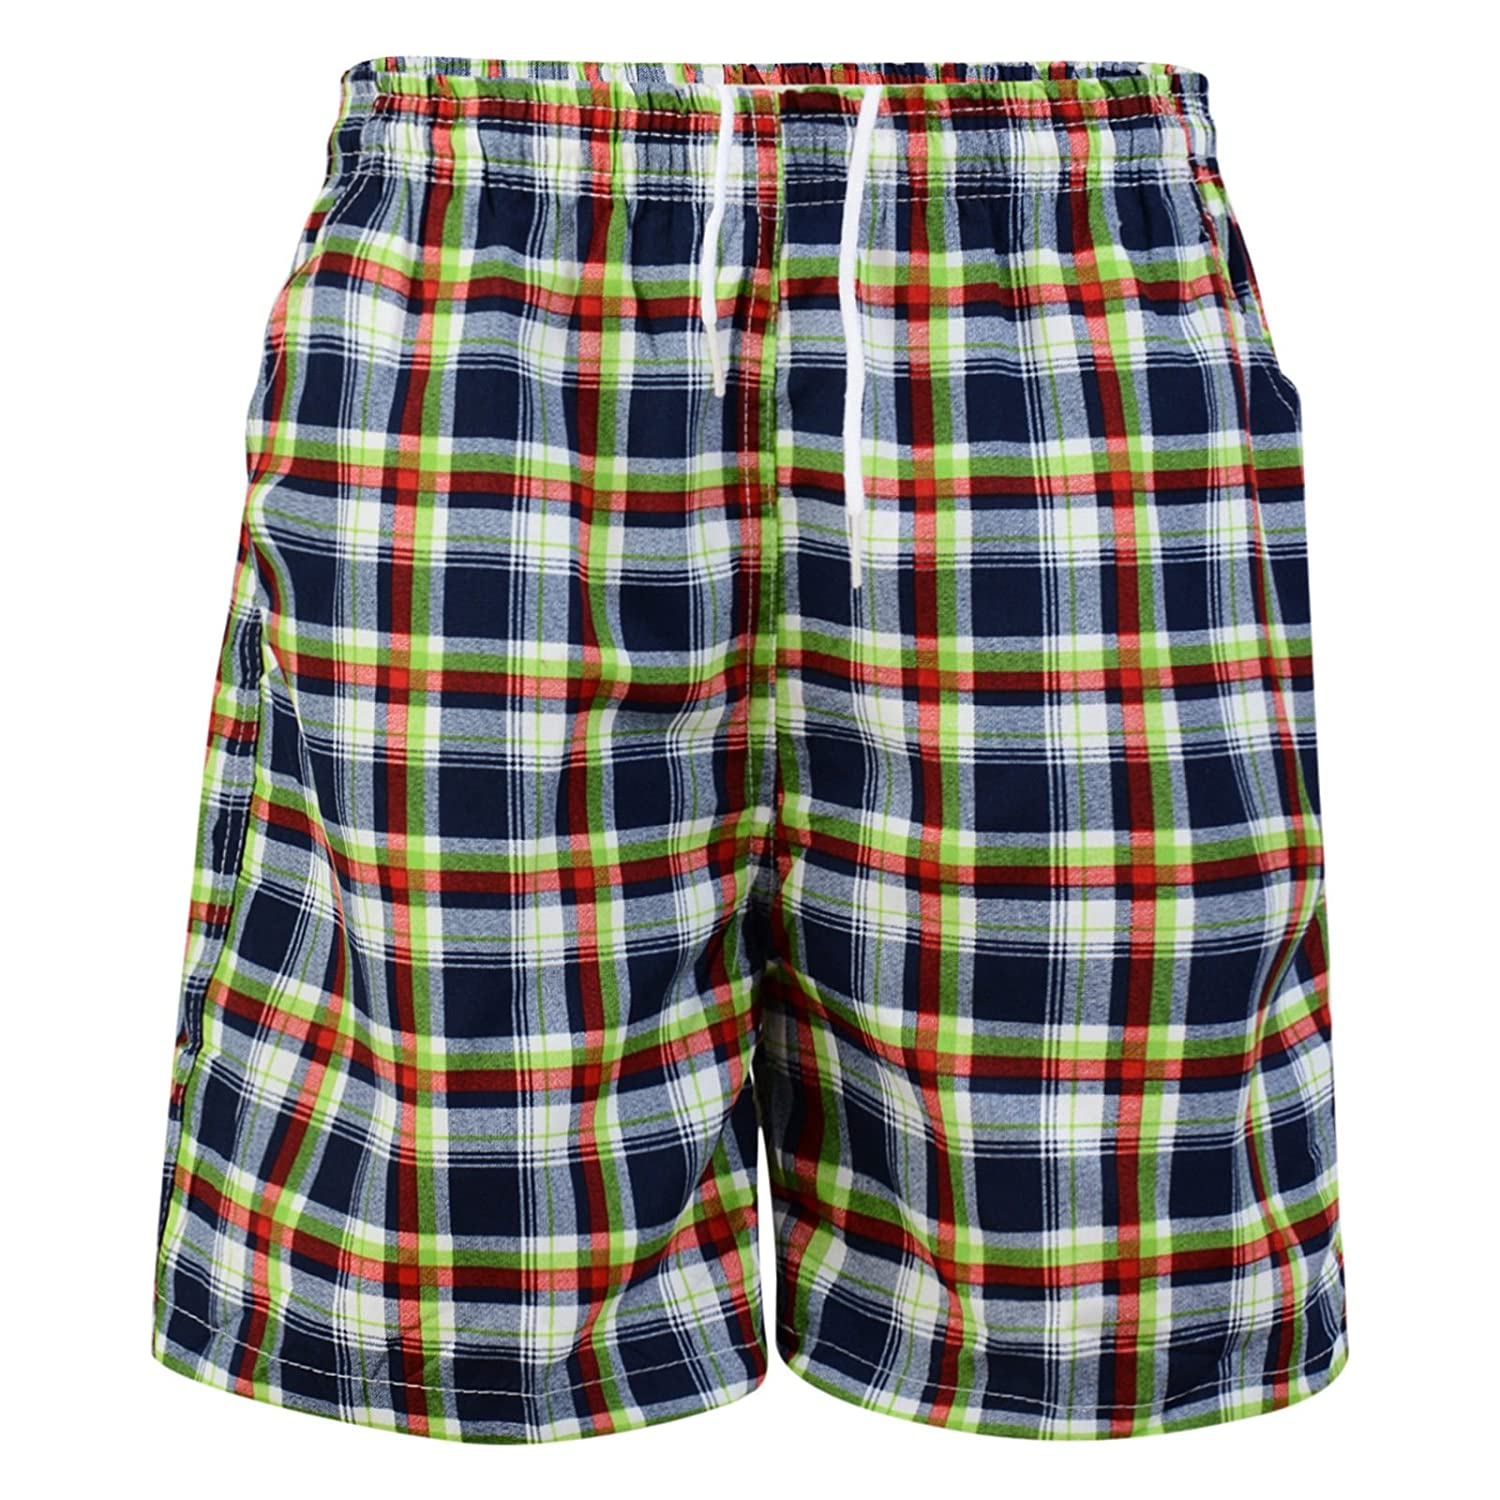 BOYS SWIMMING SHORTS CHECK FLORAL SWIMWEAR MESH LINED